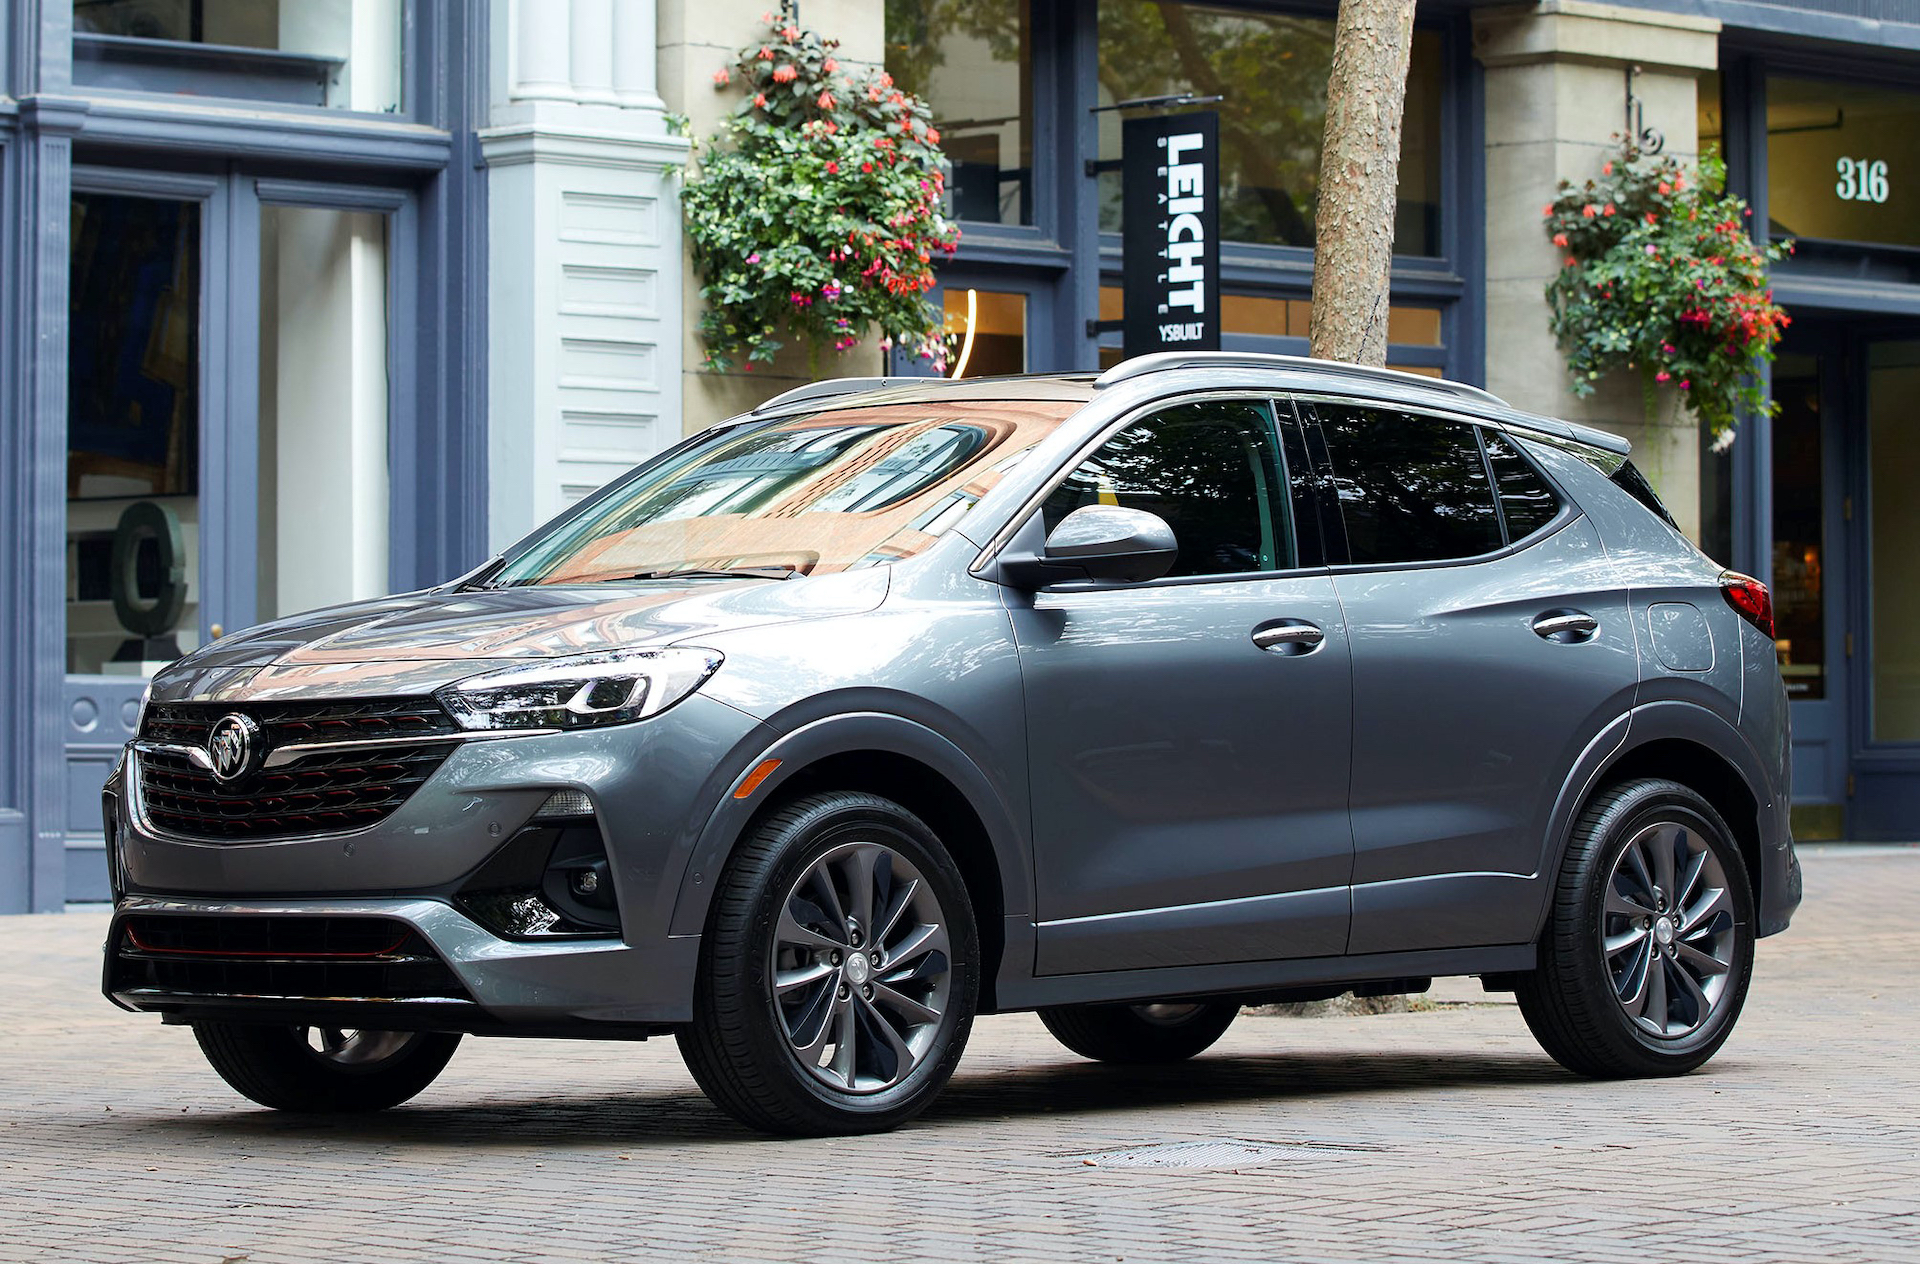 2021 Buick Encore Gx Review, New York Auto Show Canceled 2021 Buick Encore Transmission, Tire Size, Test Drive